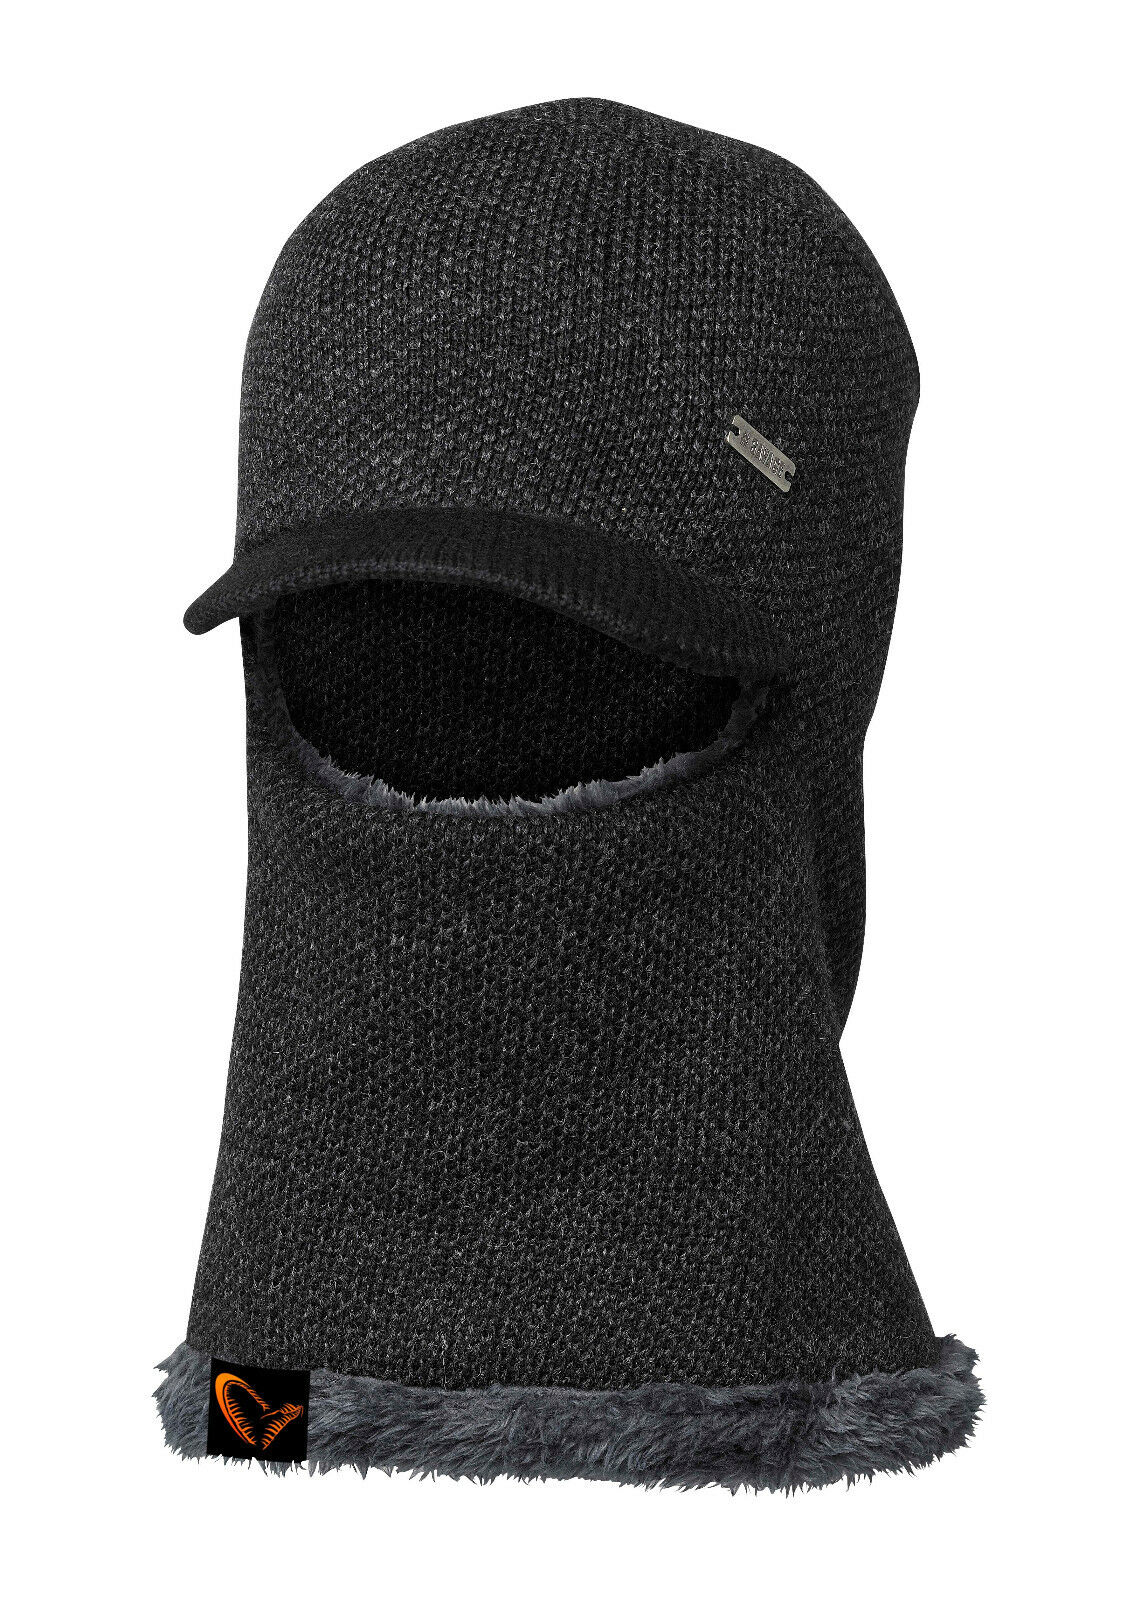 Savage Gear  Savage Fleece Balaclava Skiing Mask Hat Storm Mask Balaclava 59216